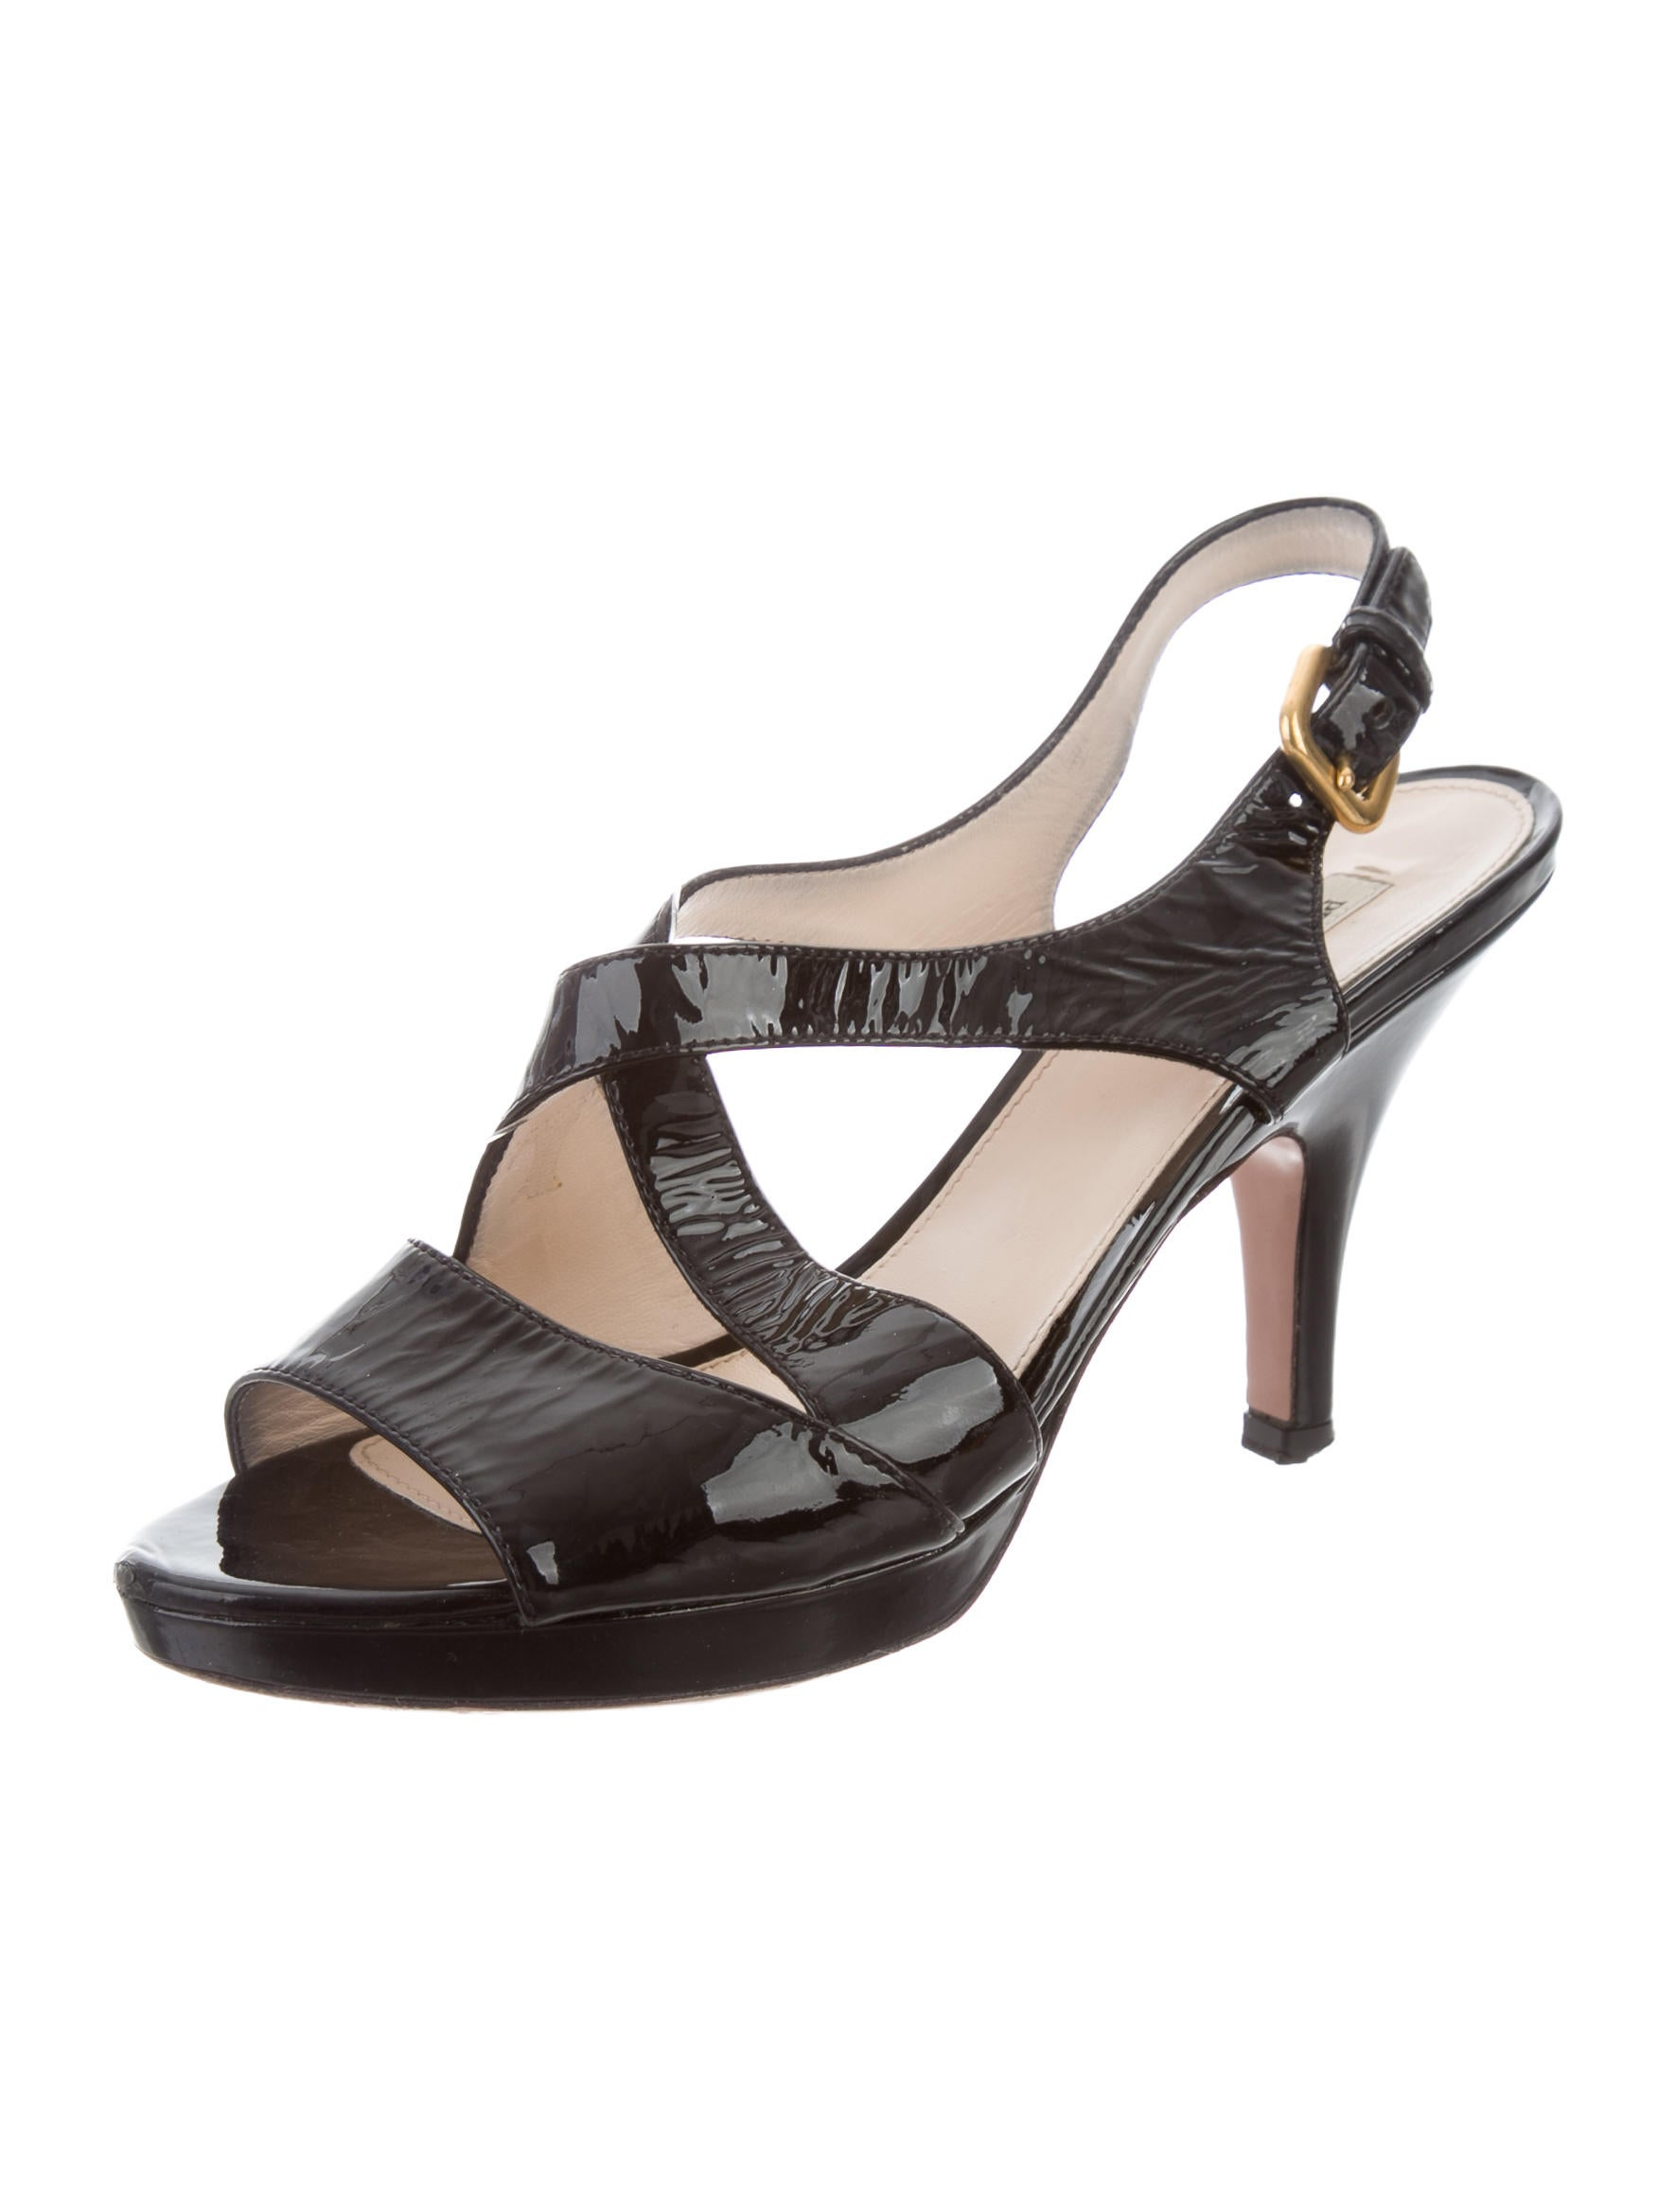 Reike Nen Square Platform Slingback - A slim square-toed platform and subtly flared block heel add modern panache to a svelte slingback fashioned from inky leather. more More like this Find other Women's Shoes.